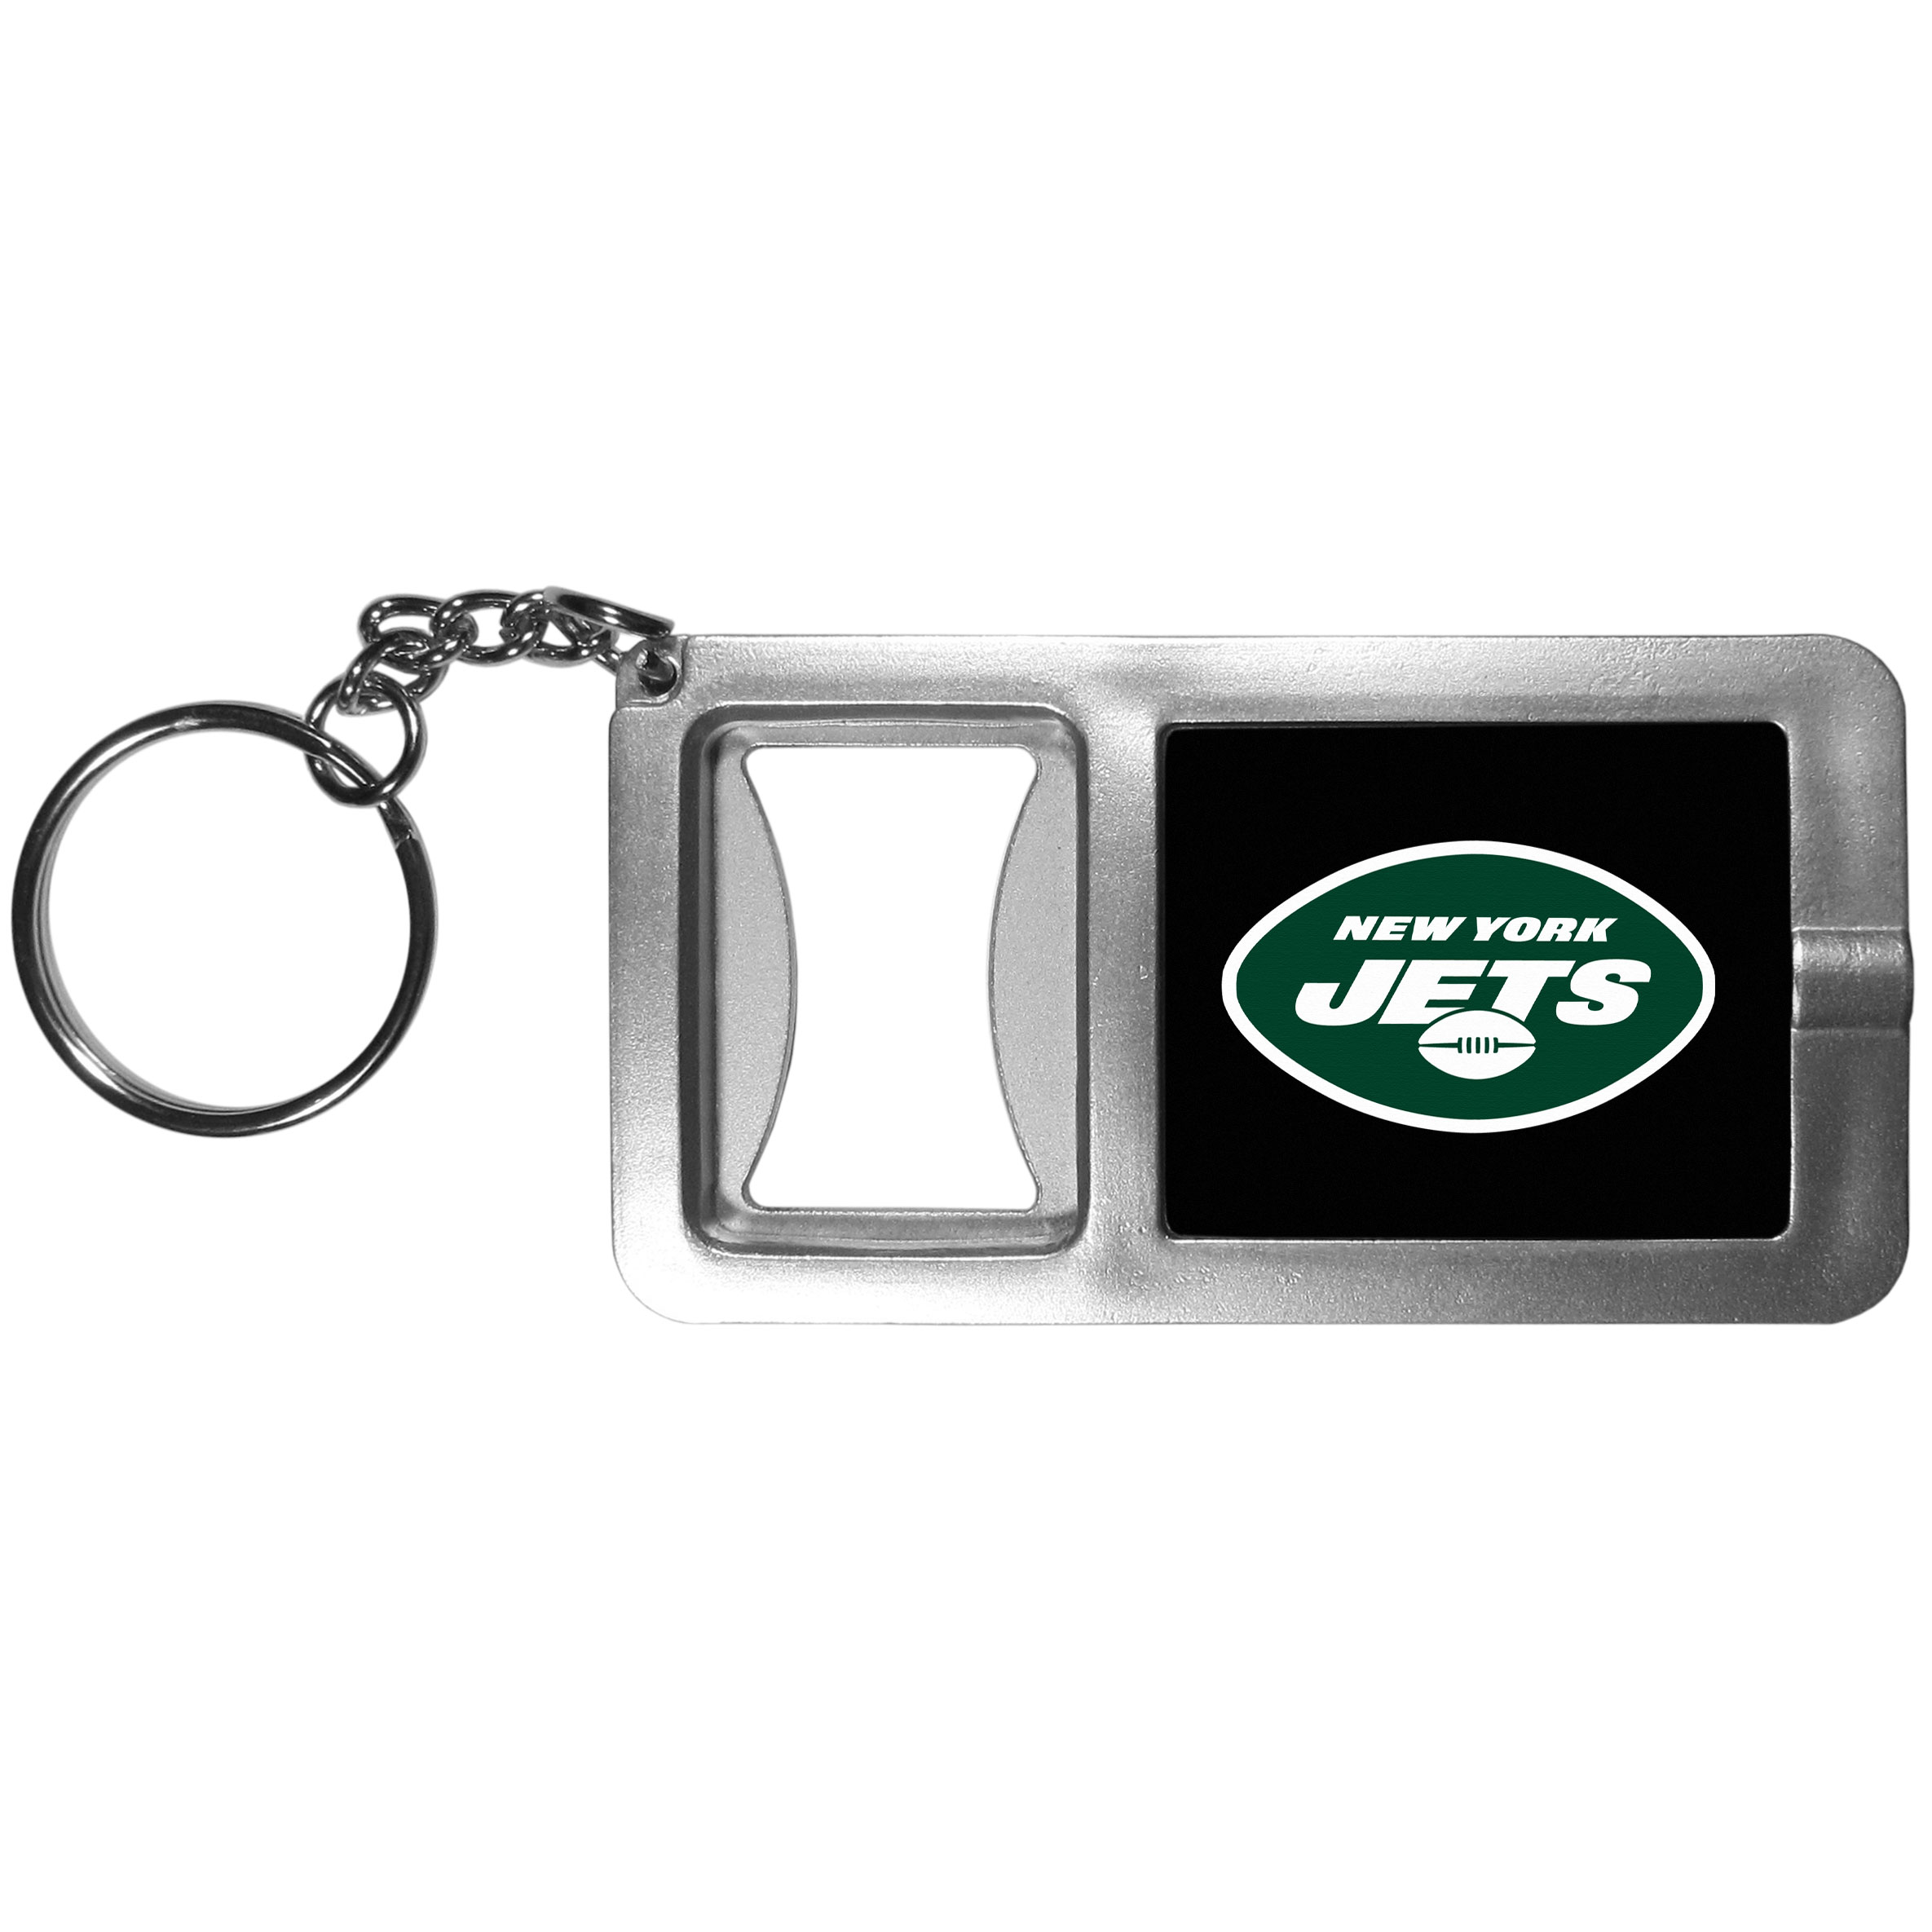 New York Jets Flashlight Key Chain with Bottle Opener - Never be without light with our New York Jets flashlight keychain that features a handy bottle opener feature. This versatile key chain is perfect for camping and travel and is a great way to show off your team pride!